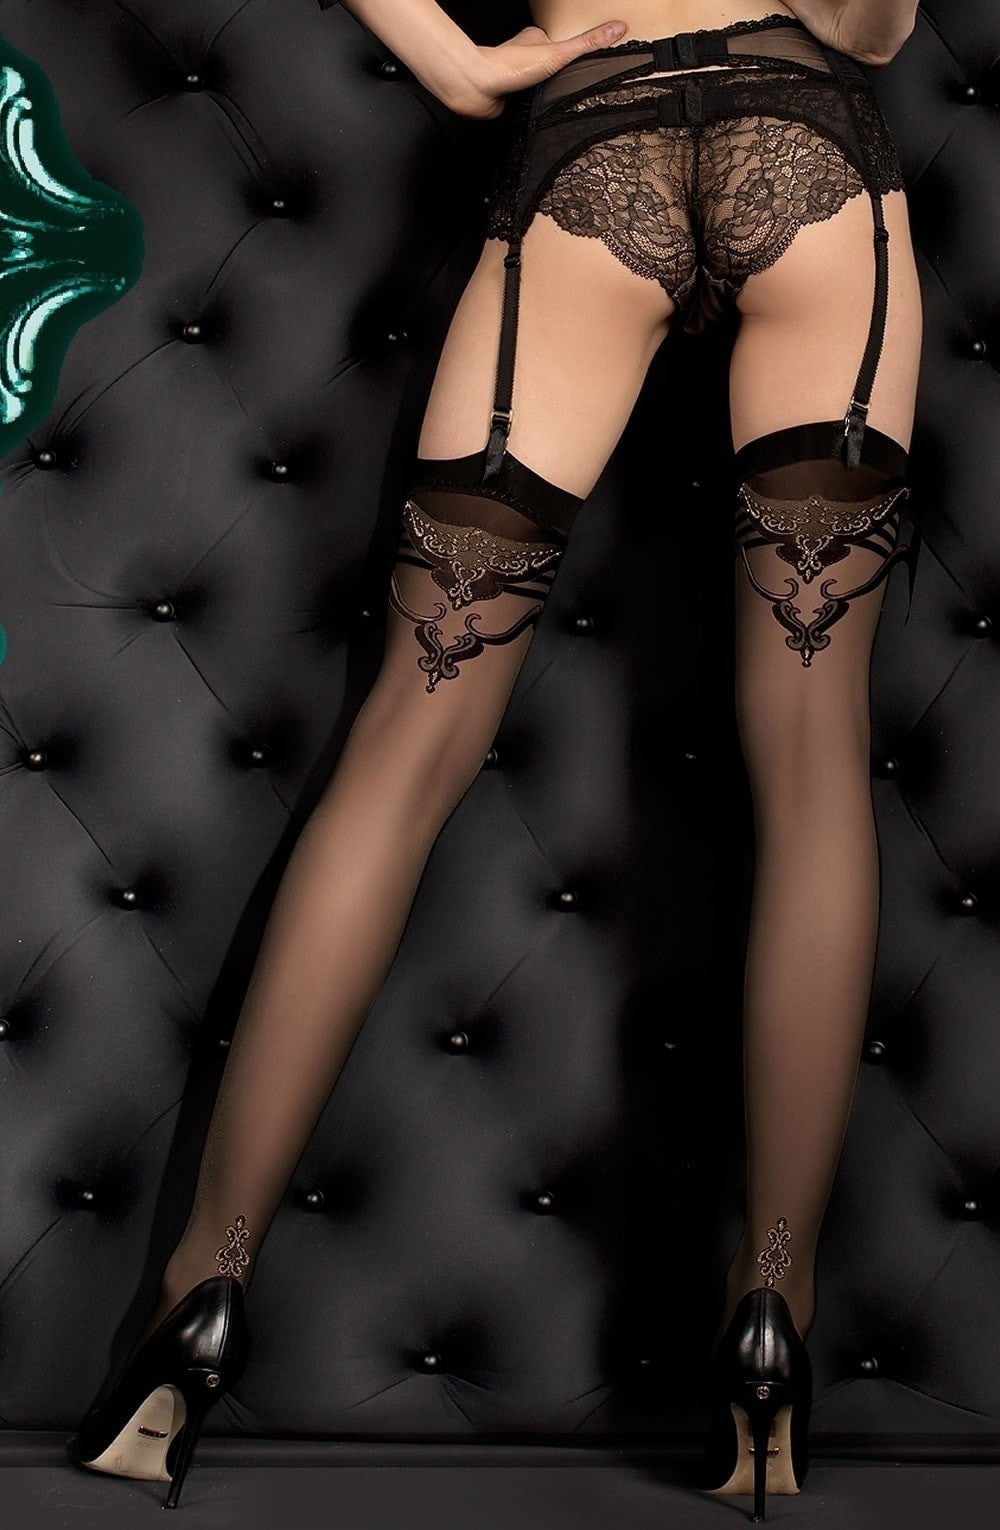 Ballerina Stockings 391 (Black) - Stockings - Ballerina - Charm and Lace Boutique